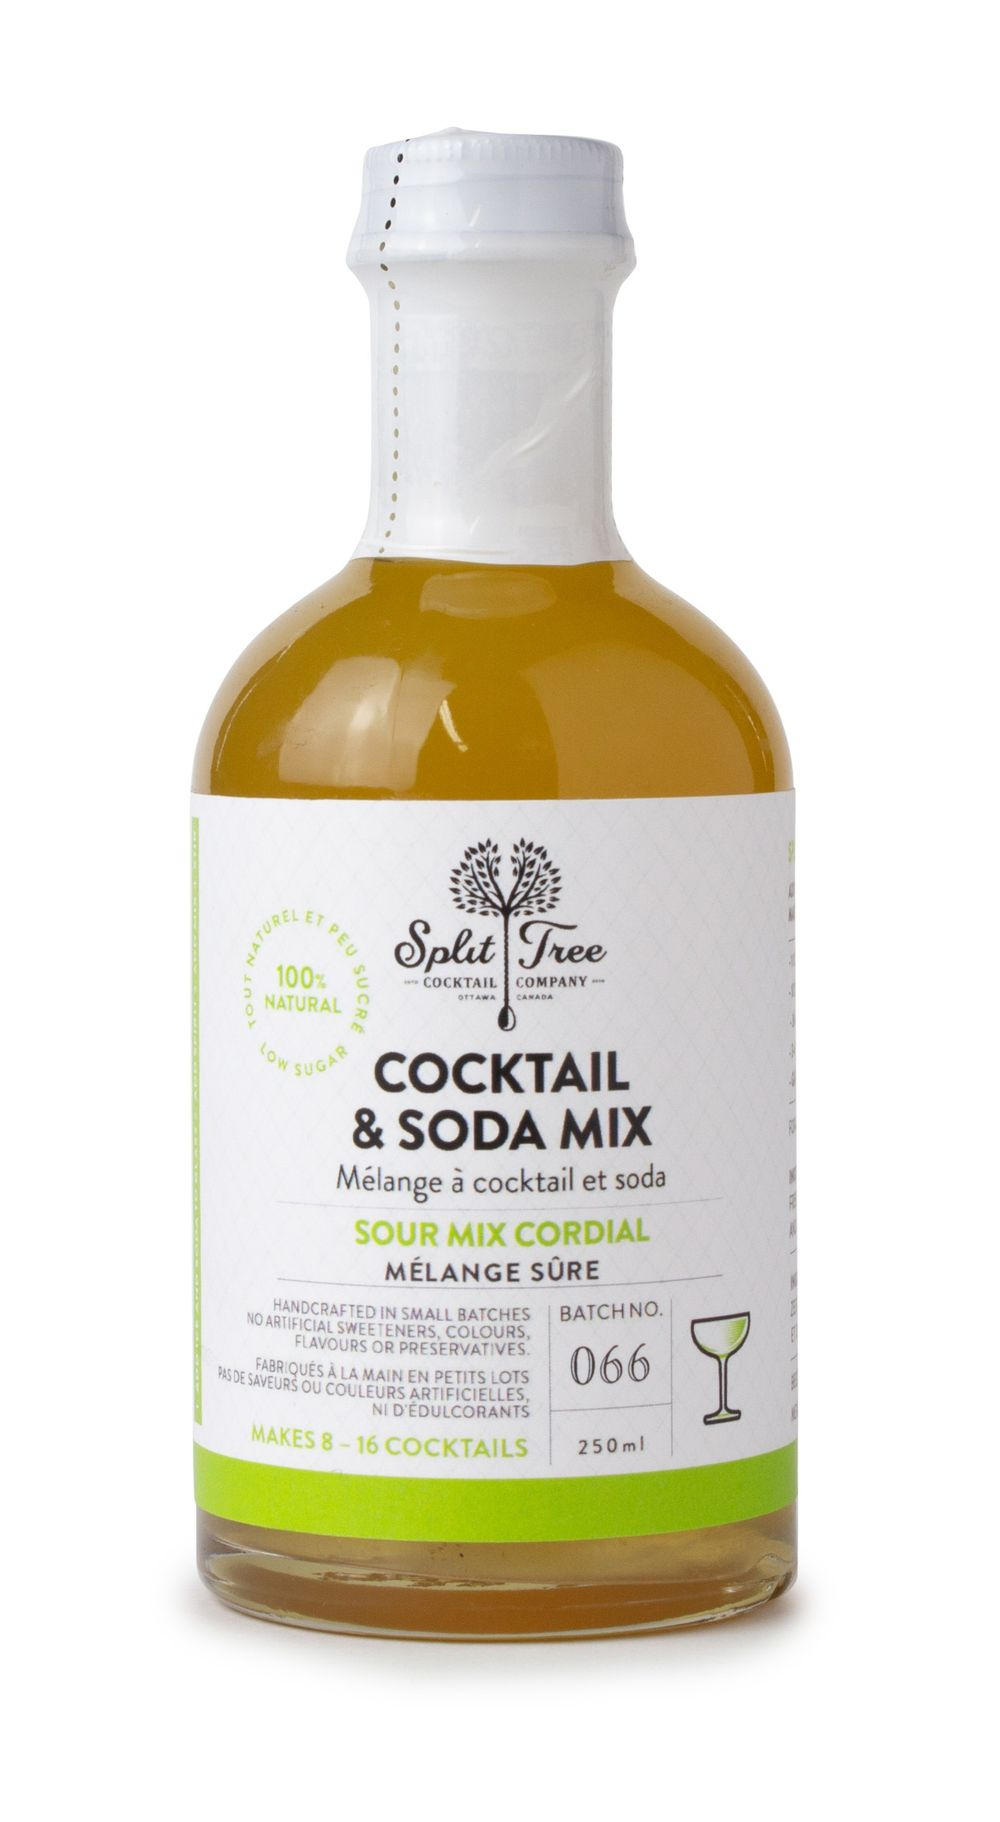 Sour Mix Syrup